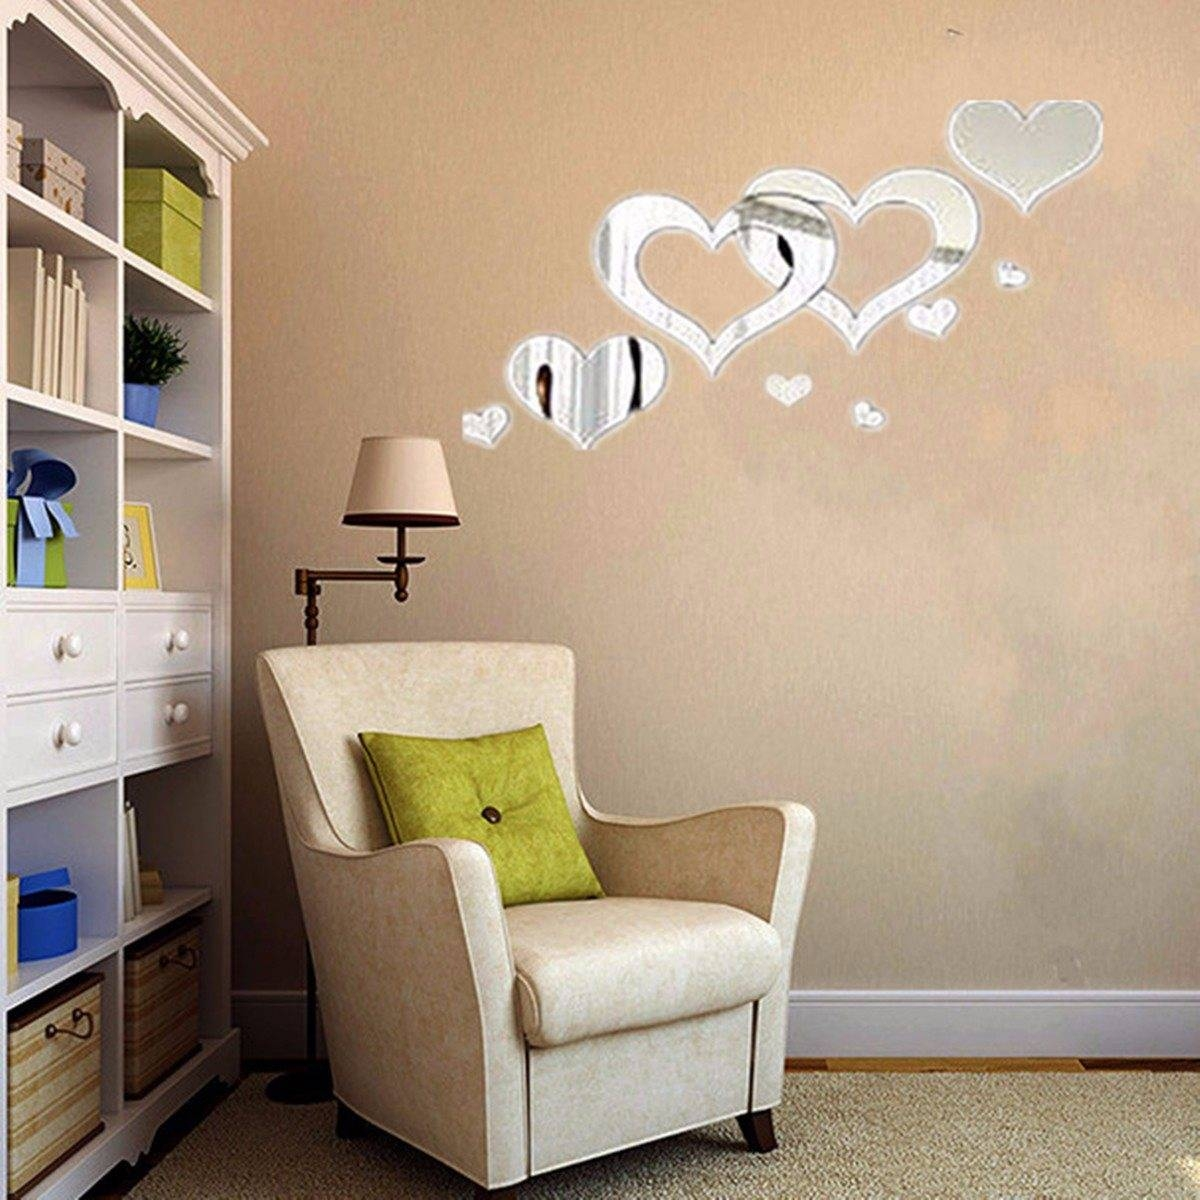 Popular Heart Shaped Mirrors-Buy Cheap Heart Shaped Mirrors Lots intended for Heart Shaped Mirrors for Wall (Image 16 of 25)